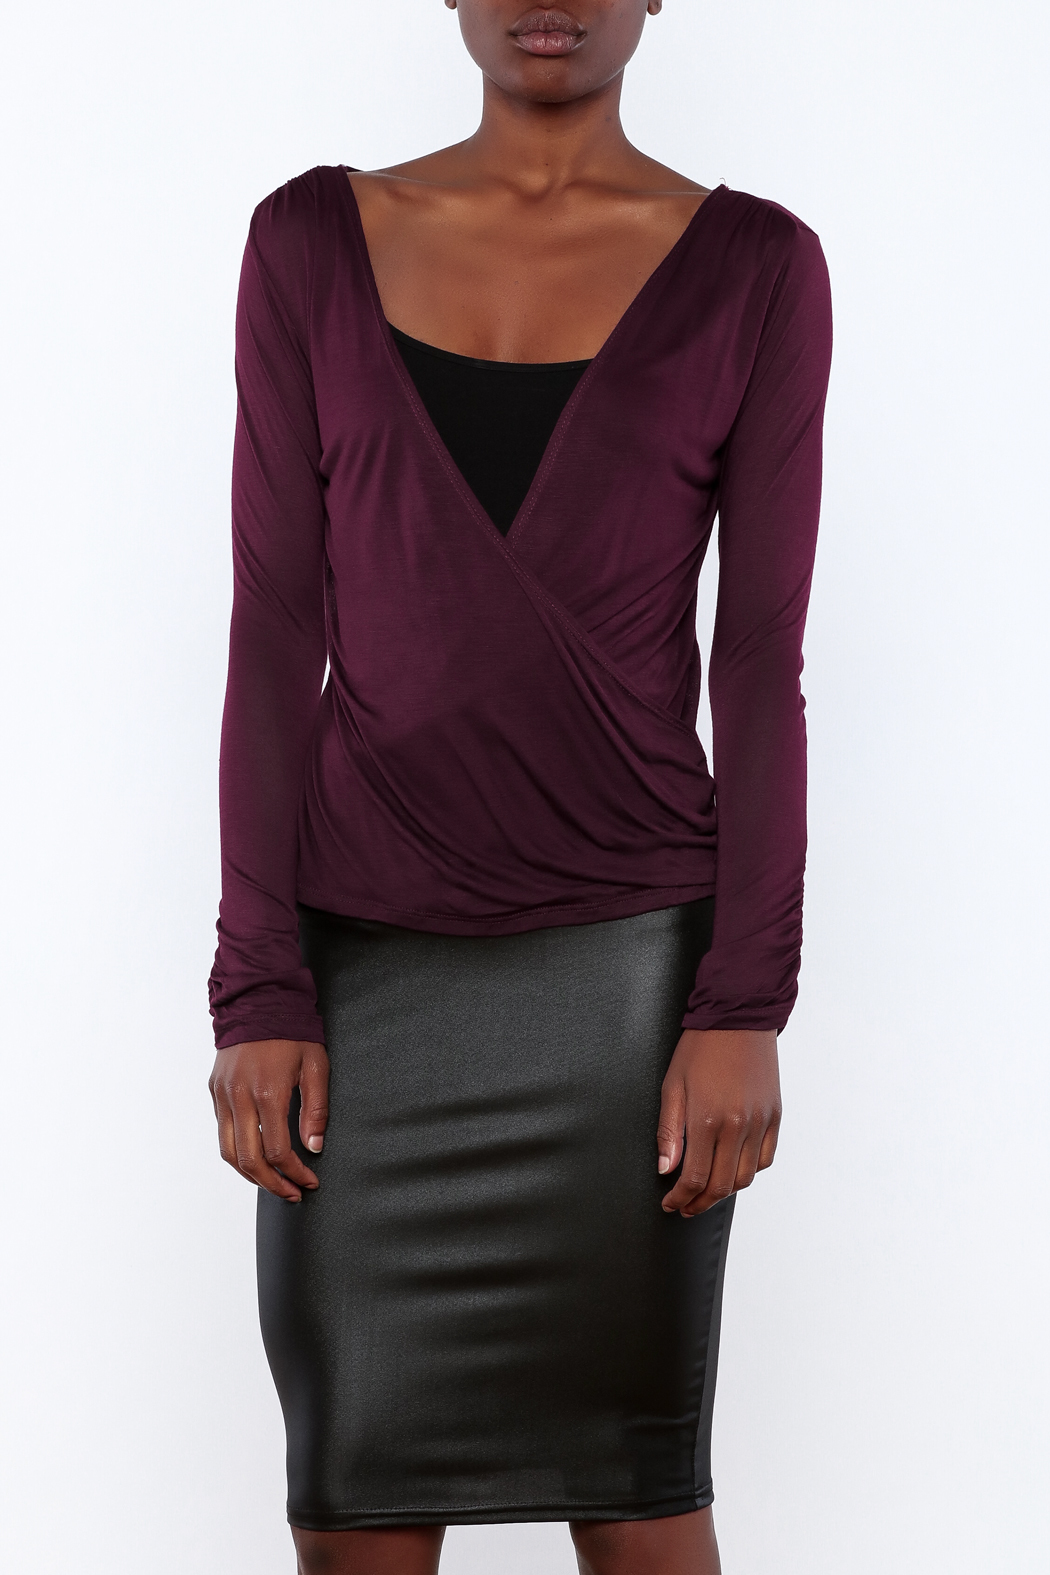 Daisy's Fashions Jersey Wrap Top - Front Cropped Image